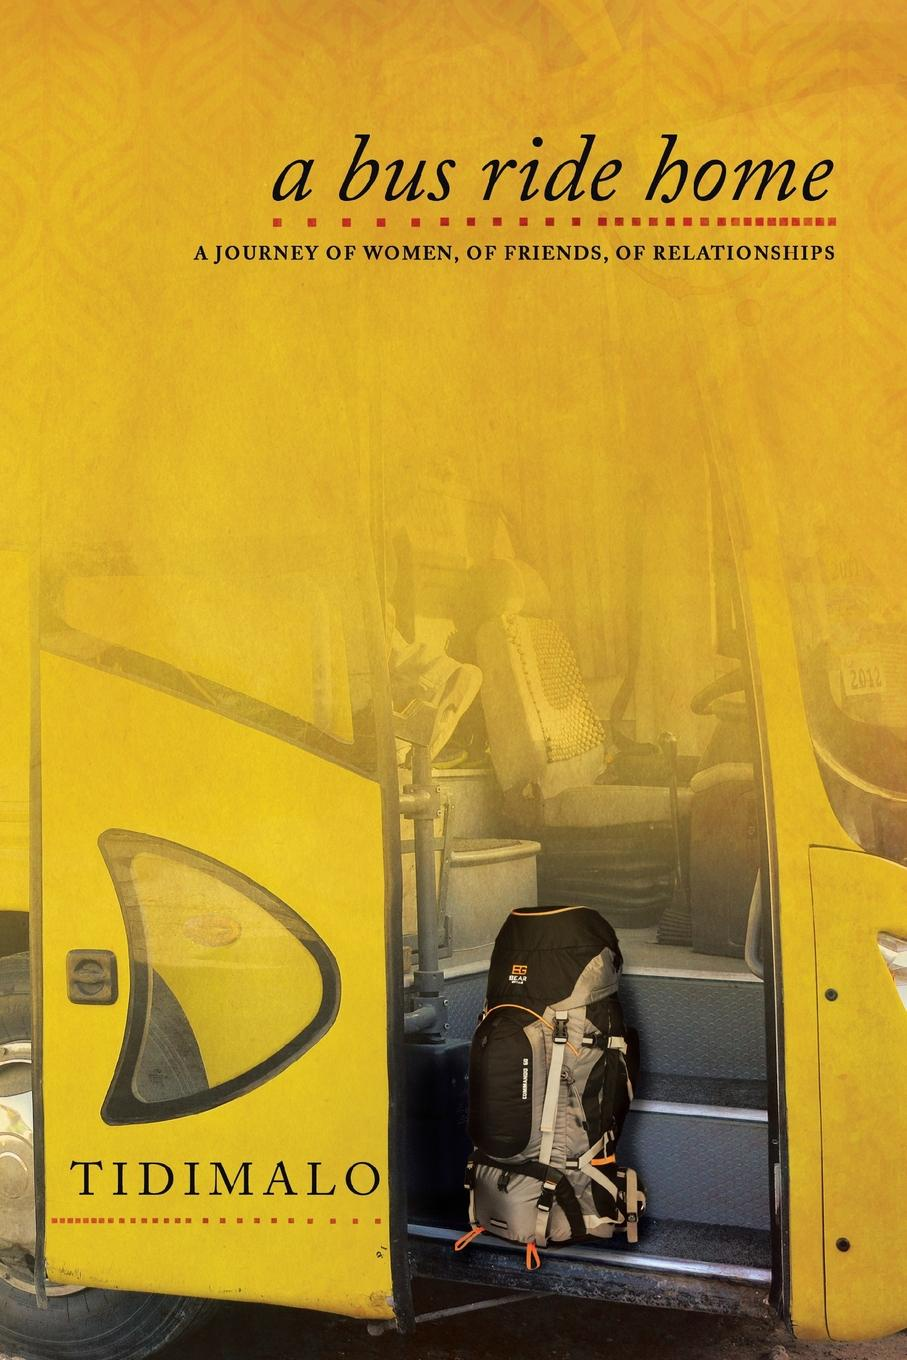 Tidimalo A Bus Ride Home. A Journey of Women, of Friends, of Relationships a journey home